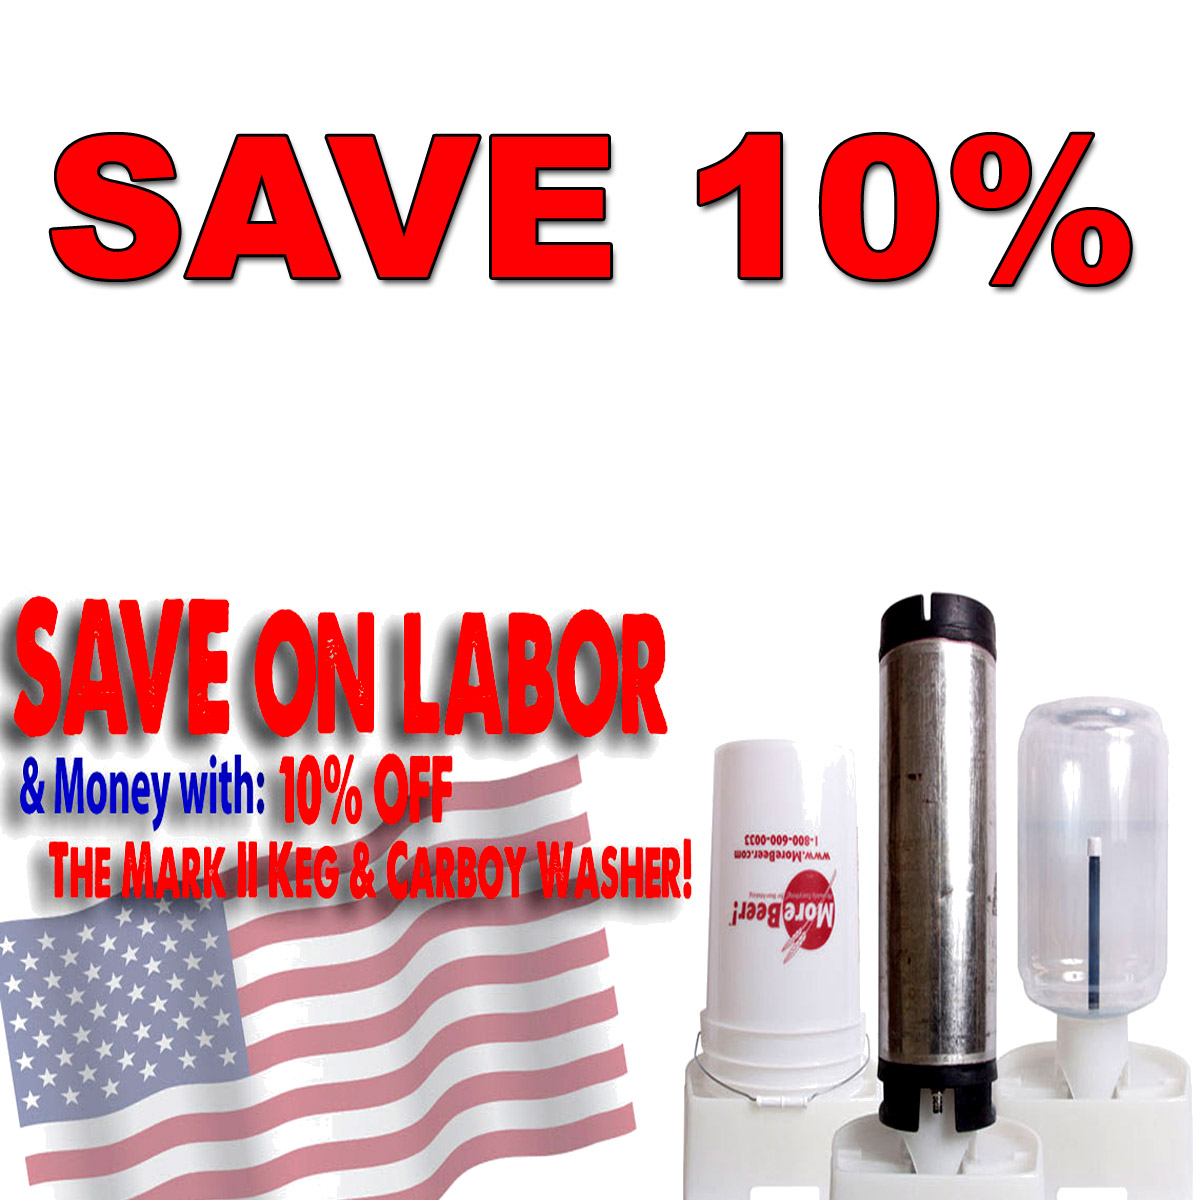 Home Brewer Promo Code for Save 10% On A Keg And Carboy Washer Coupon Code